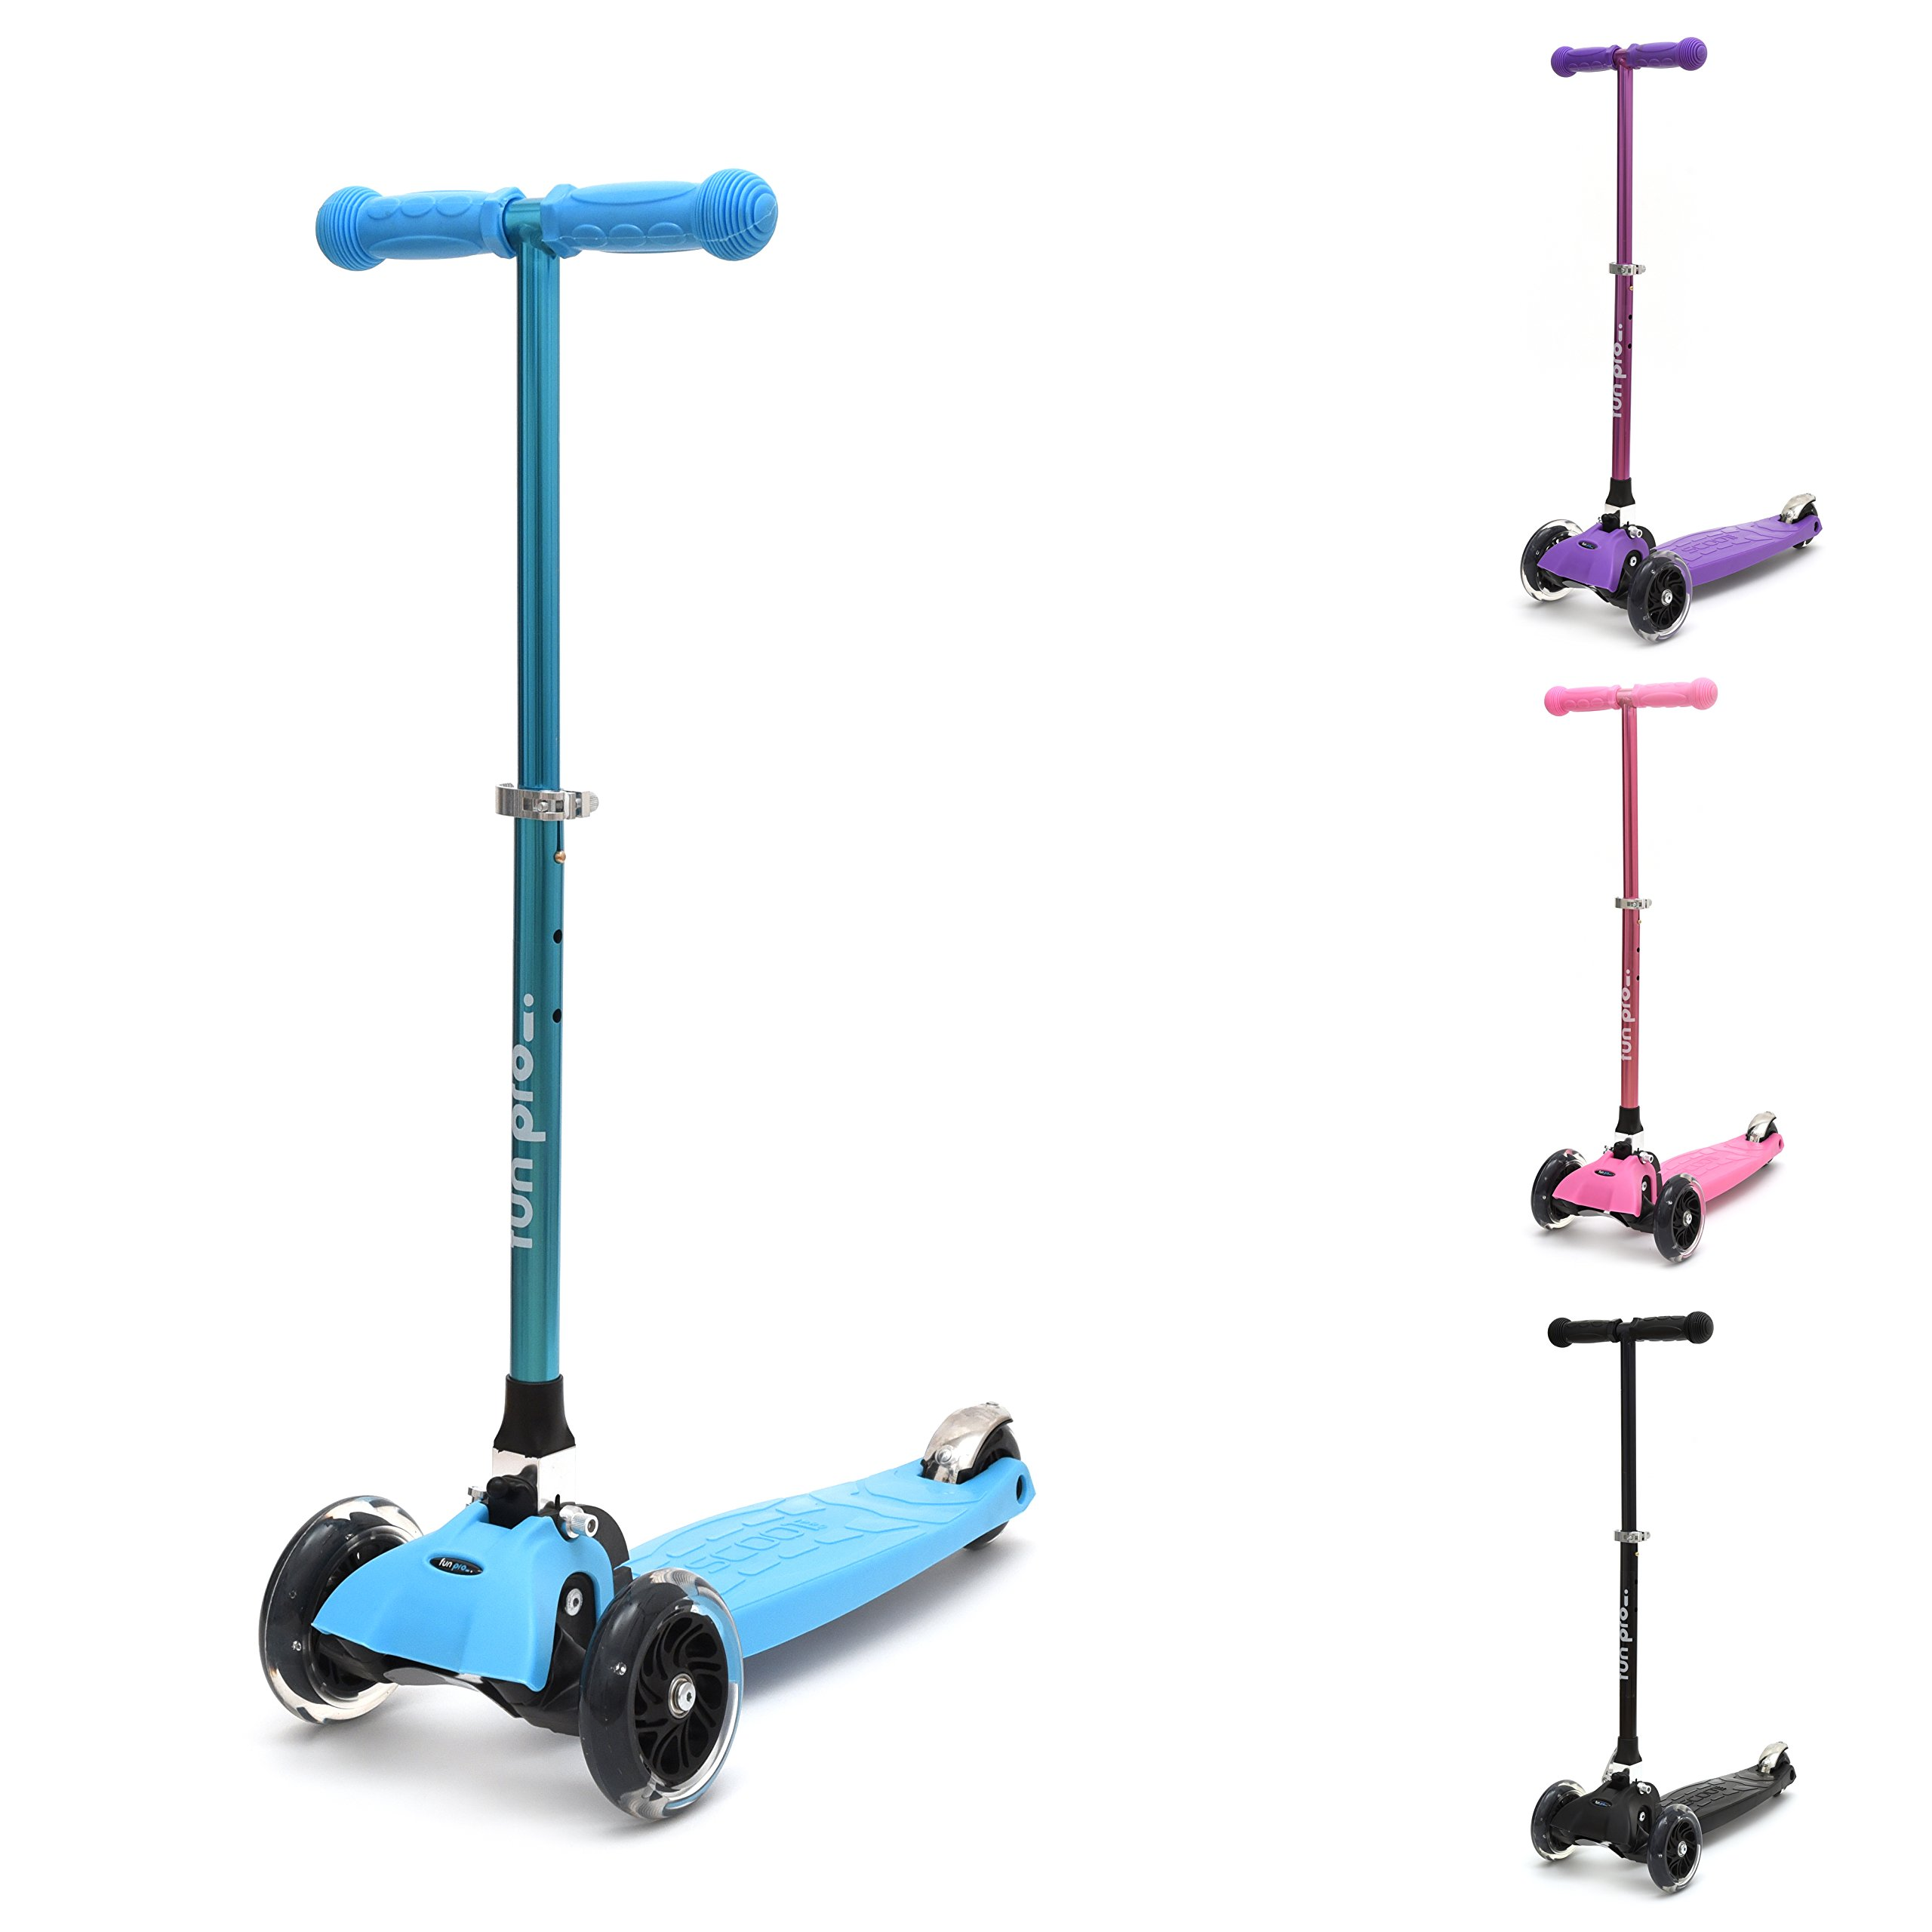 fun pro - Kick Scooter 3 Wheels for Toddlers and Kids - Light Up Three-Wheeled Foldable Micro Scooter for Girls & Boys w/ Bright Light LED Wheels   Best for Children from 2 to 7 Year Old